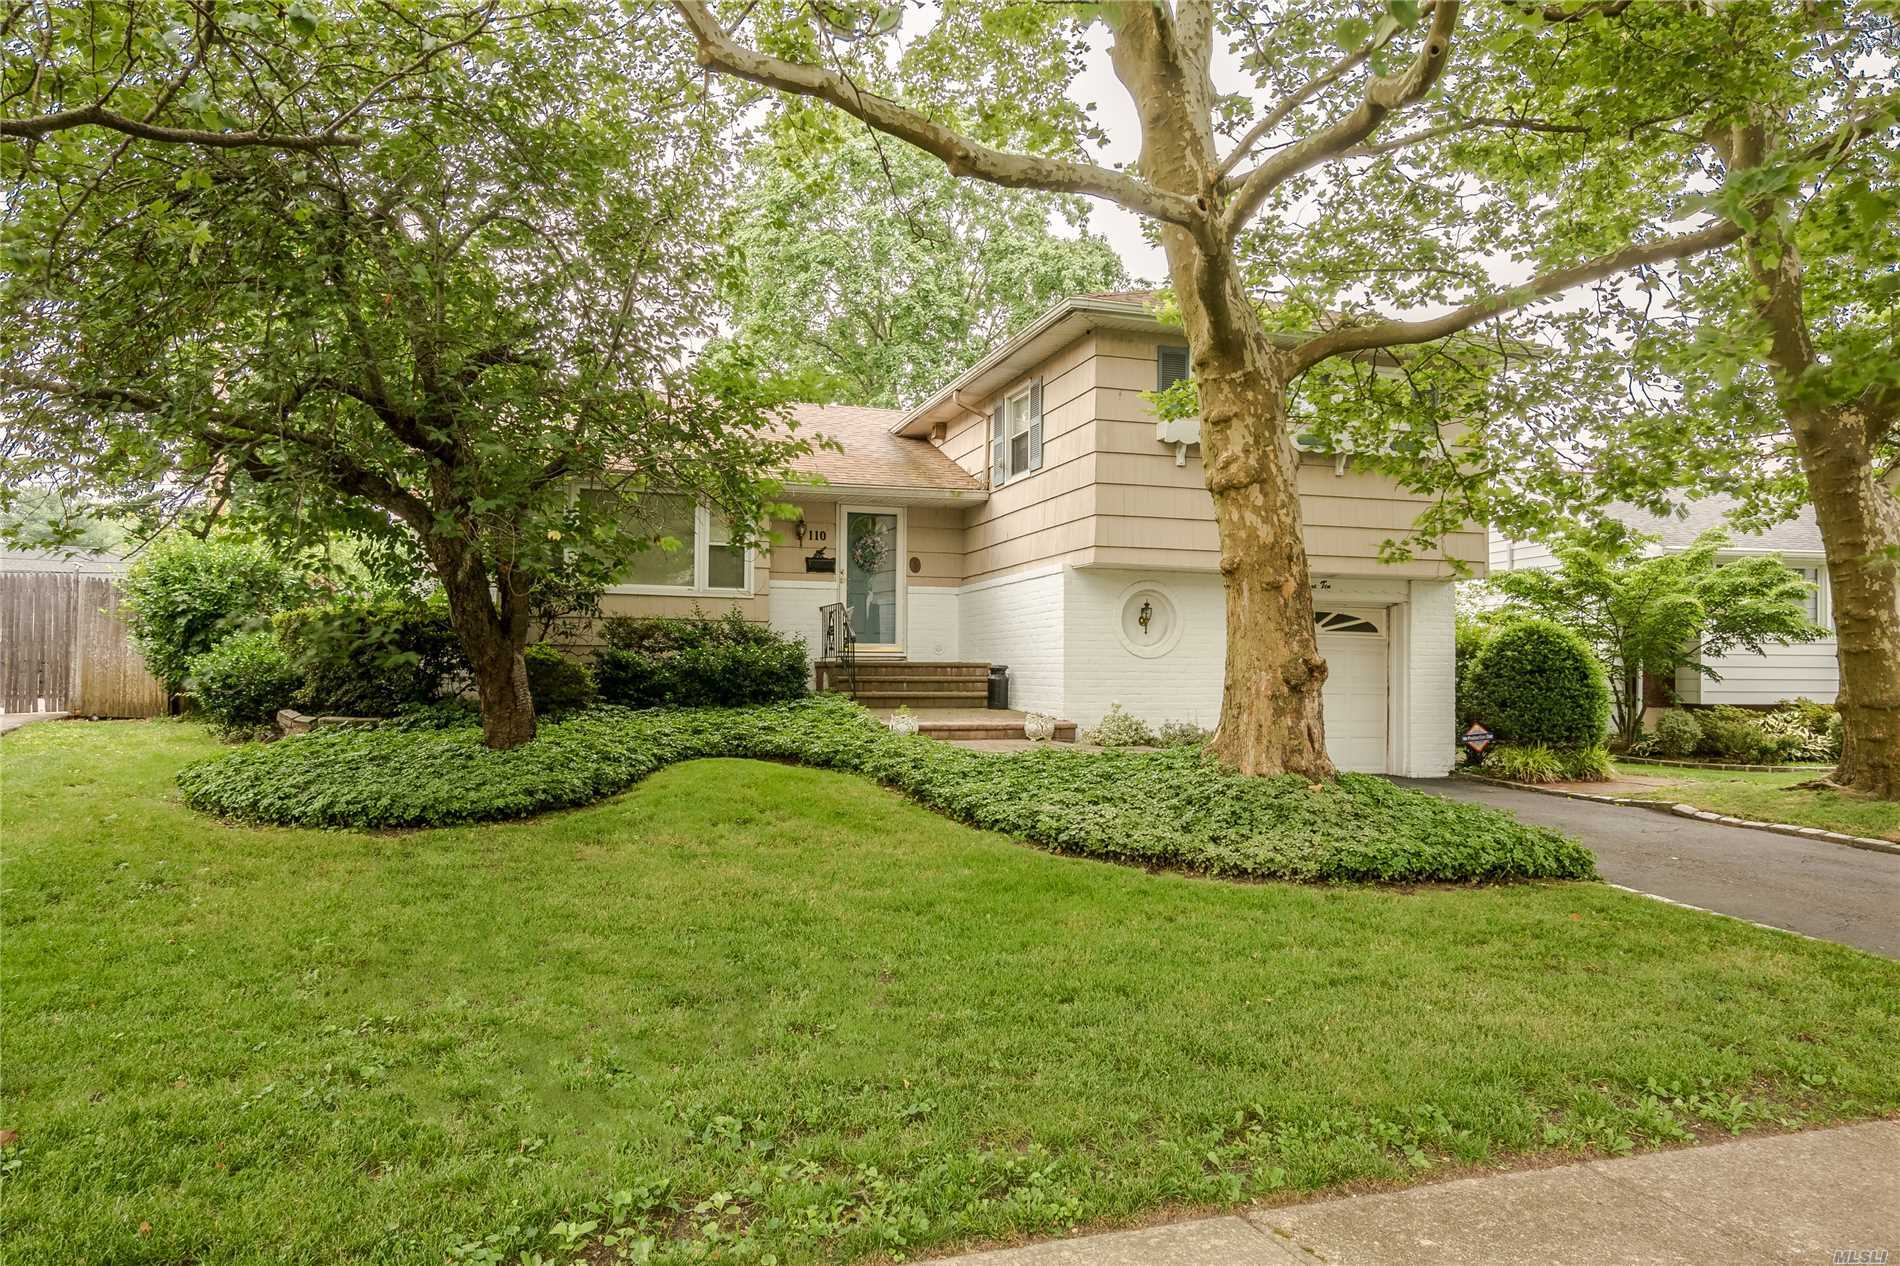 Welcome To This Charming Spacious Split In The Heart Of Radcliff Manor! Meticulously Maintained With A Flow For Entertaining. Amenities Include: Custom Family Room W/ Built-Ins, Vaulted Ceilings & Gas Fireplace, Cac, Ig Sprinklers, Expansive Kitchen With Ss Appliances & Granite Counter Tops. Plenty Of Storage!